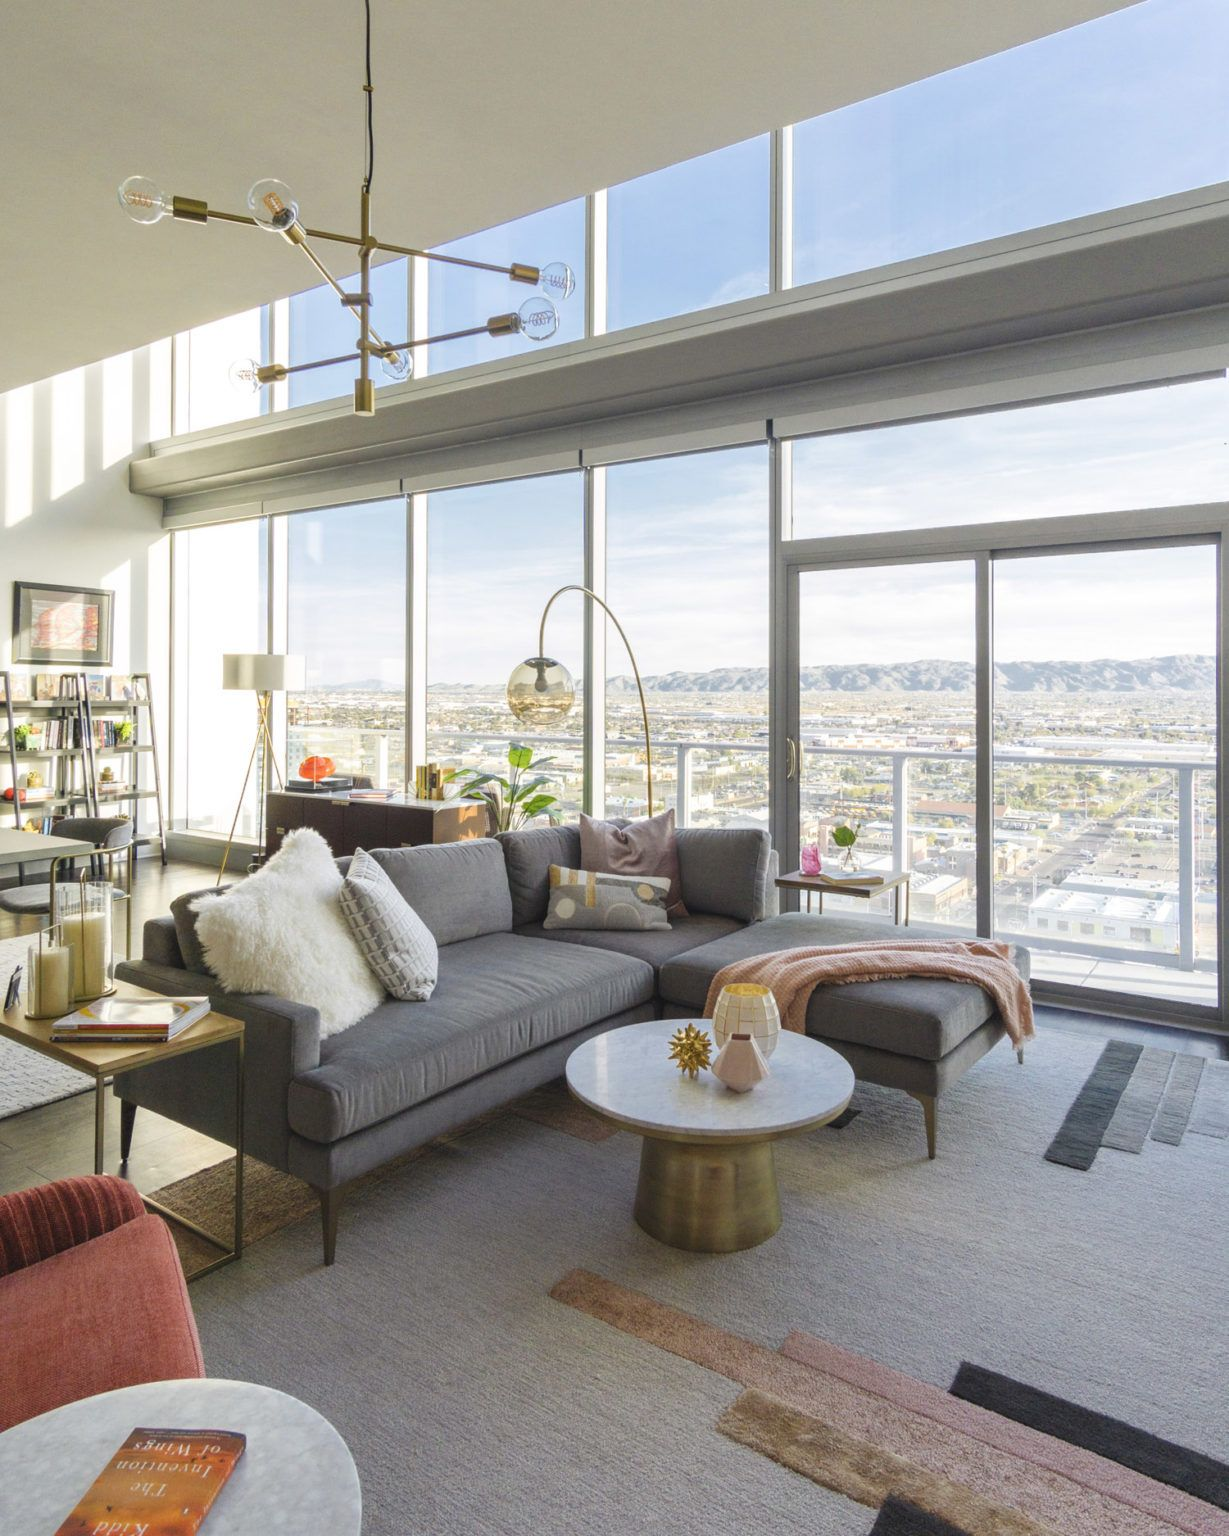 Design Crew Embracing FloortoCeiling Sunset Views in a